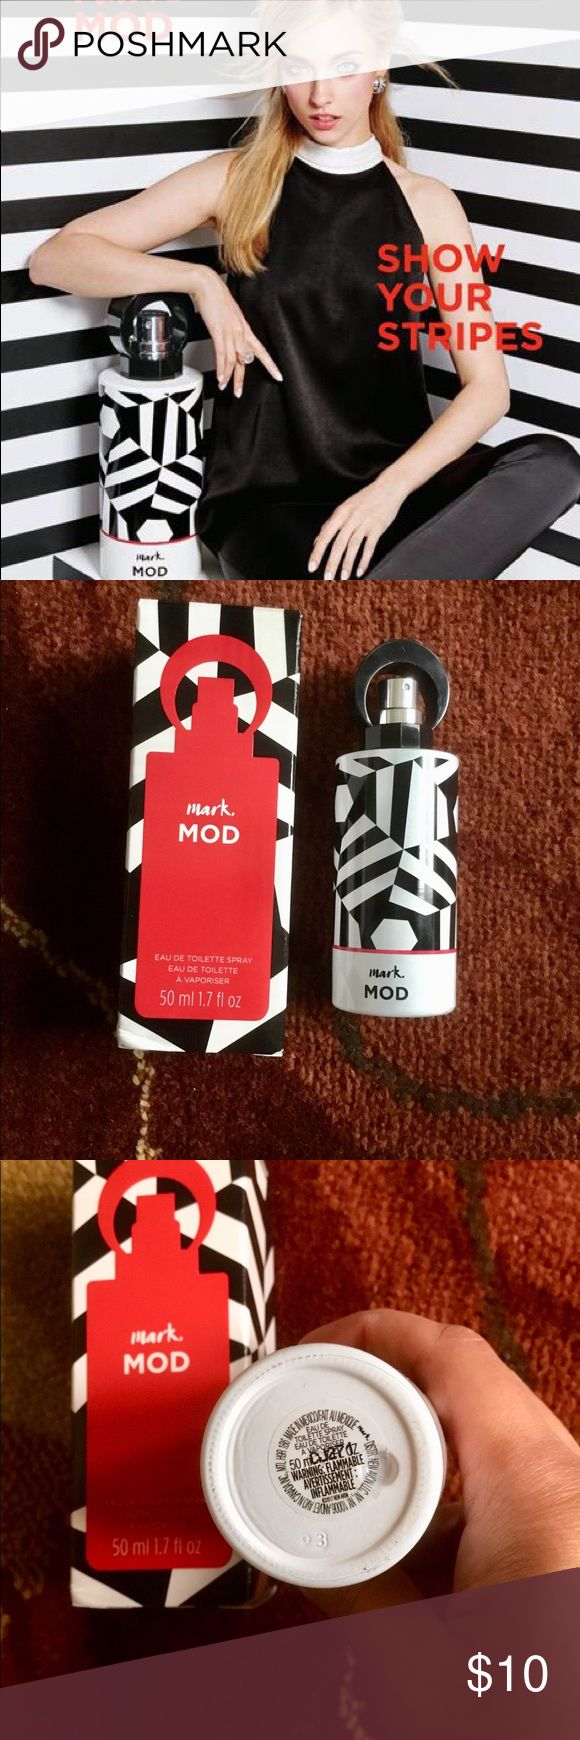 Mark Mod Eau De Toilette 💋 New. Full 50 ml 1.7 fl oz. Soft and lovely scent. London calling! Channel an era of short skirts, extra-long lashes and graphic black-and-white prints with this swinging medley of rose and capucine florals spiked with a spicy nutmeg allure. NOTES • Top Note: swinging medley of rose • Middle Note: capucine florals • Bottom Note: spicy nutmeg allure My home is pets and smoke free. Bundle and save 10%🌷🌞 mark Other